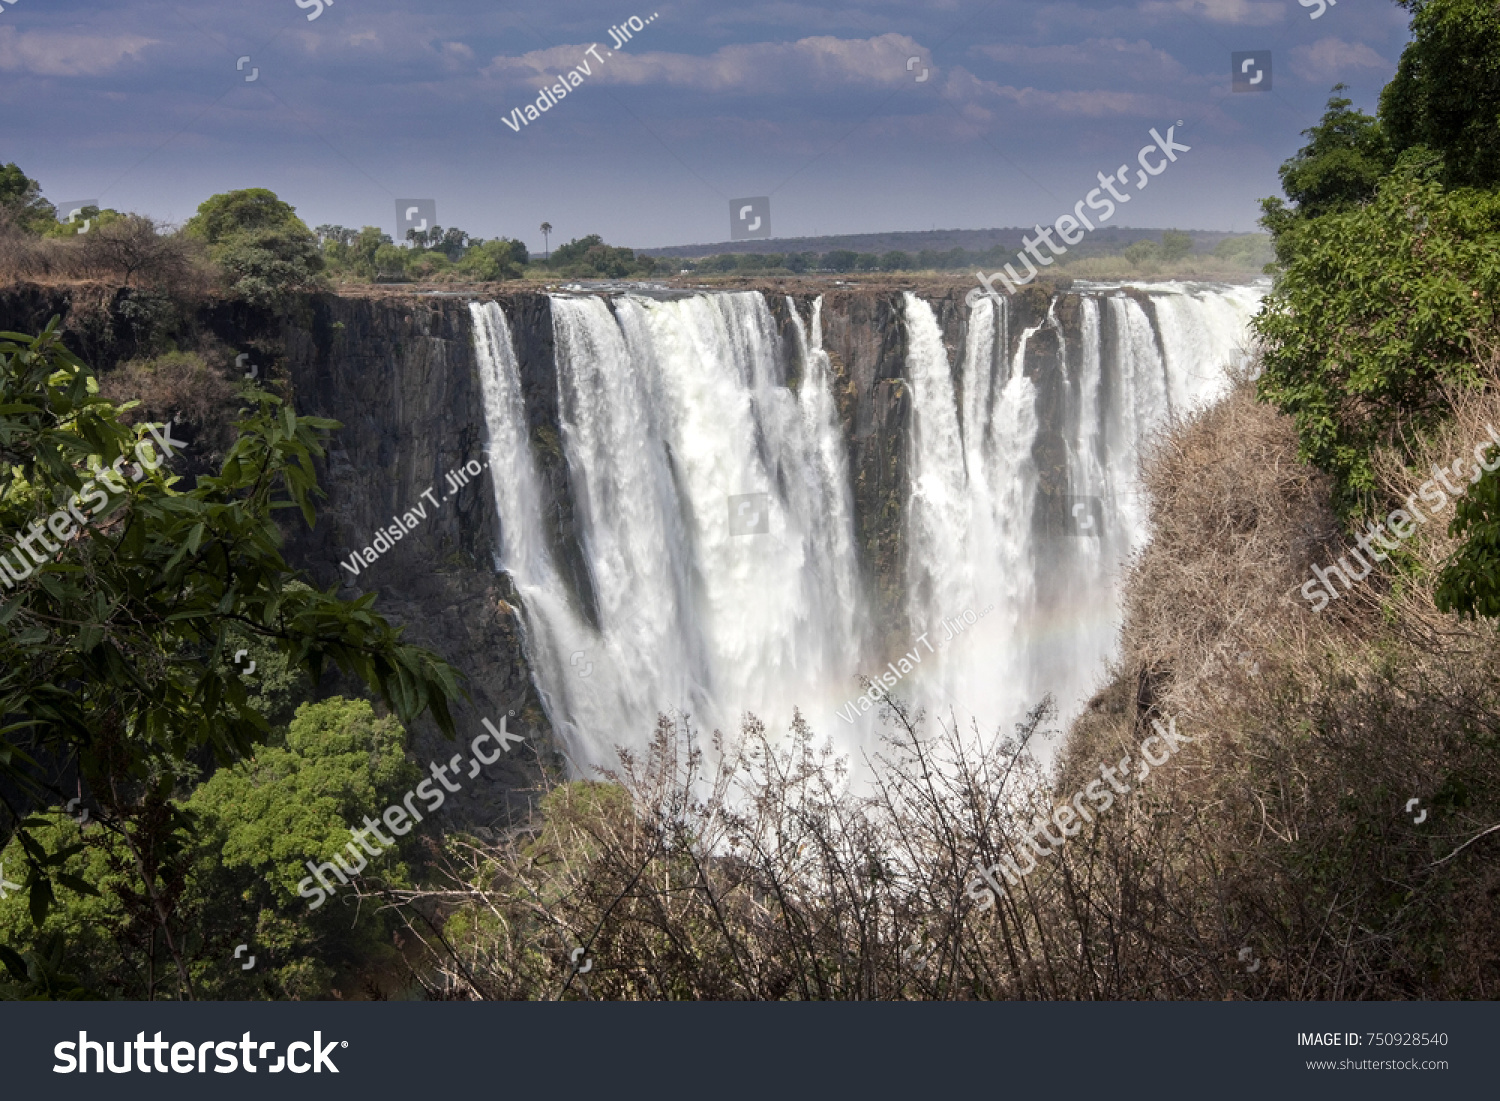 Victoria waterfalls images best waterfall 2018 the 10 best victoria falls tours excursions activities 2018 victoria falls zambia zimbabwe publicscrutiny Images